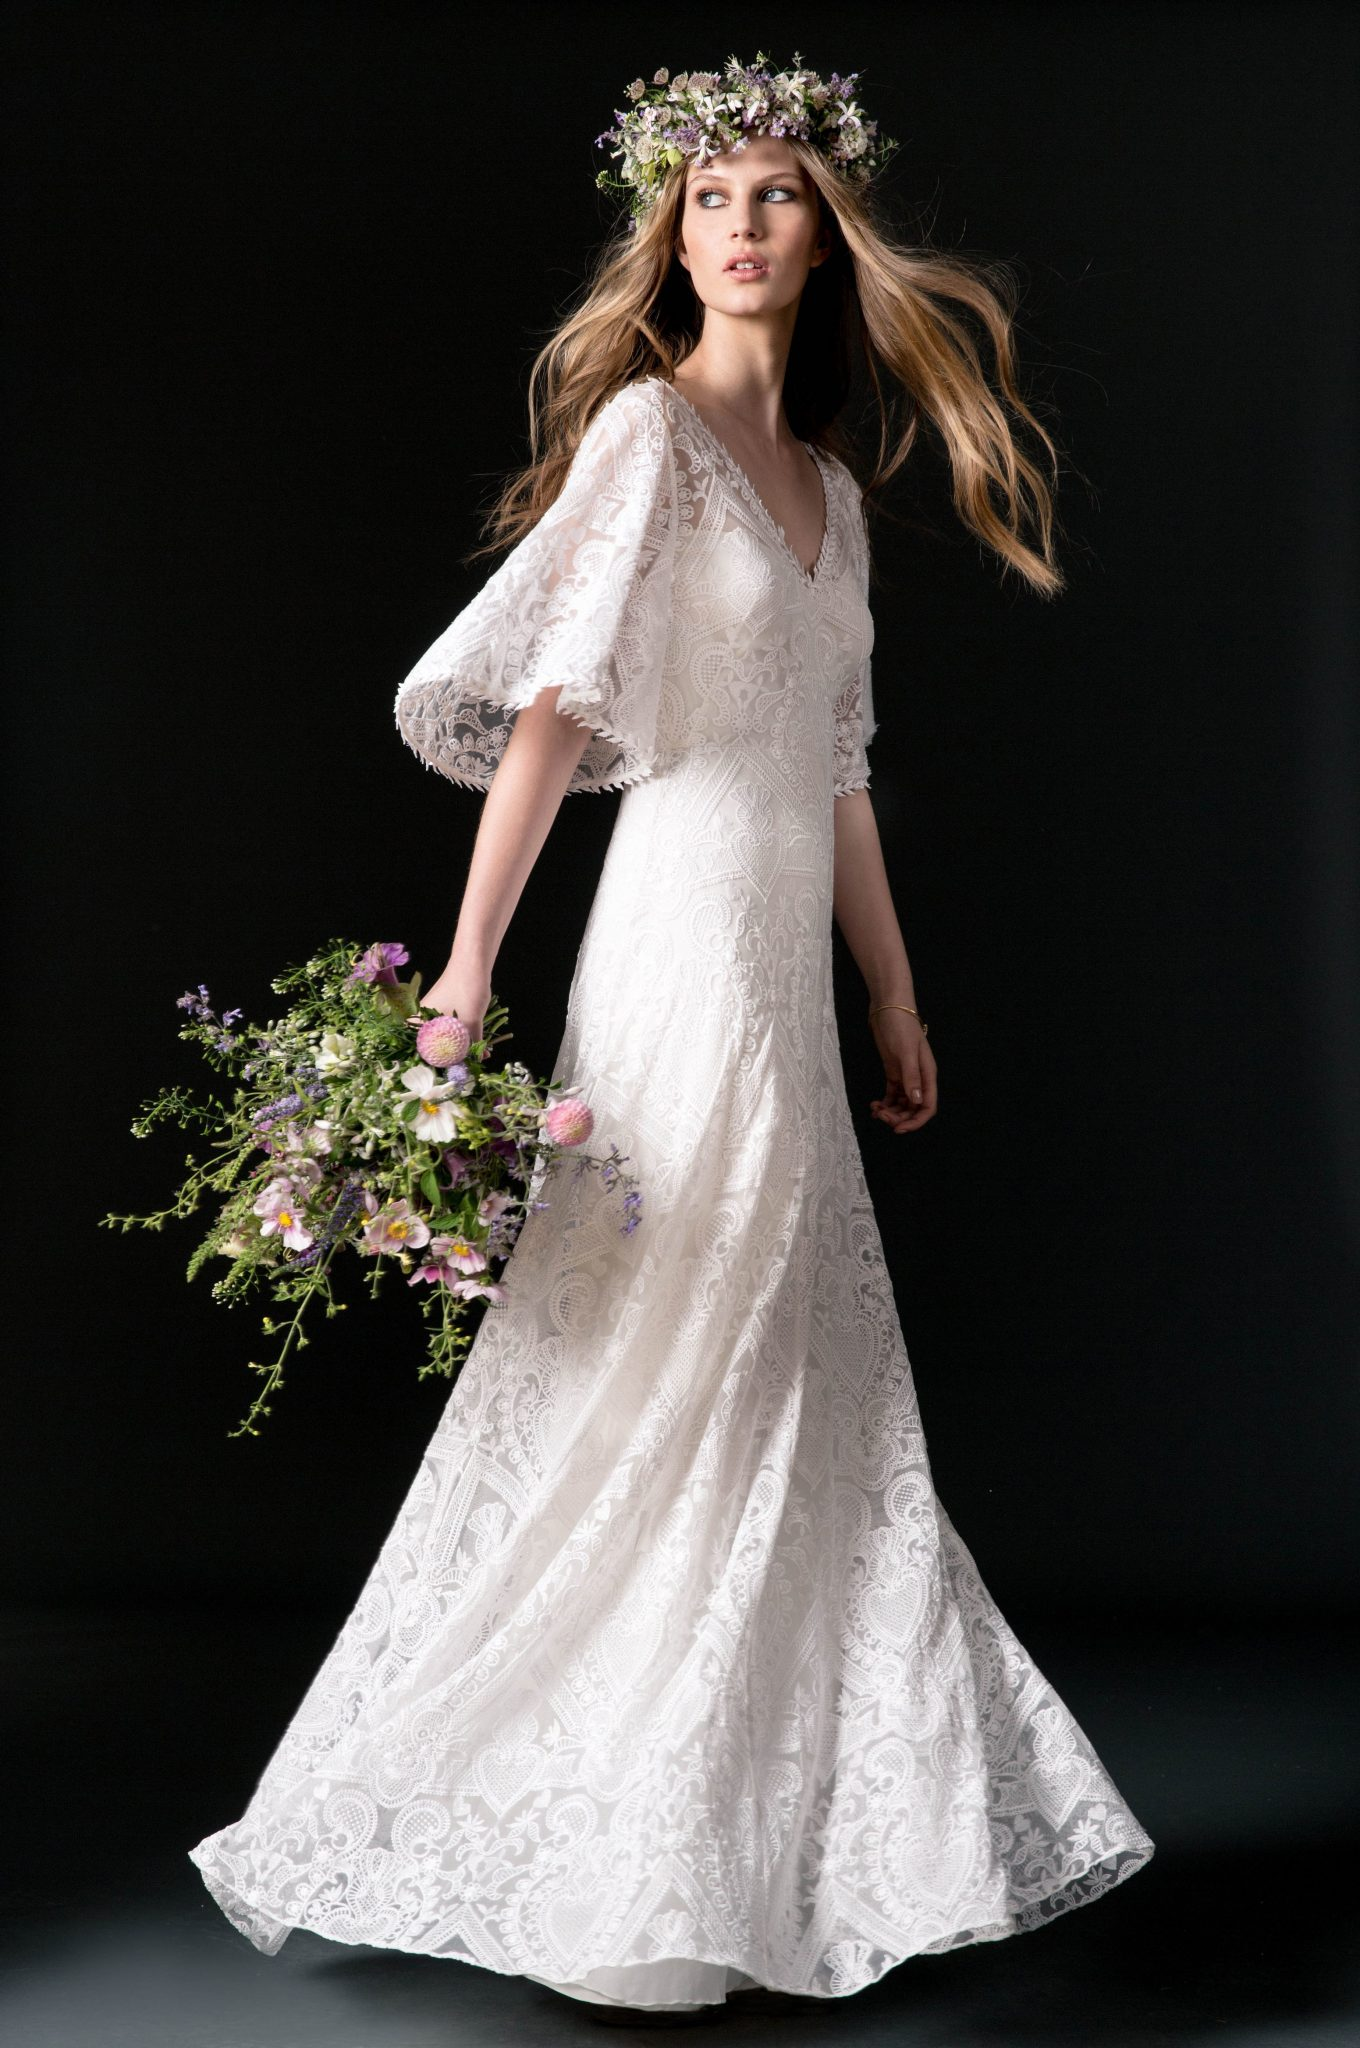 Bridal Fashion Week Fall 2018 Sleeve Wedding Dress | www.thestyledbride.com